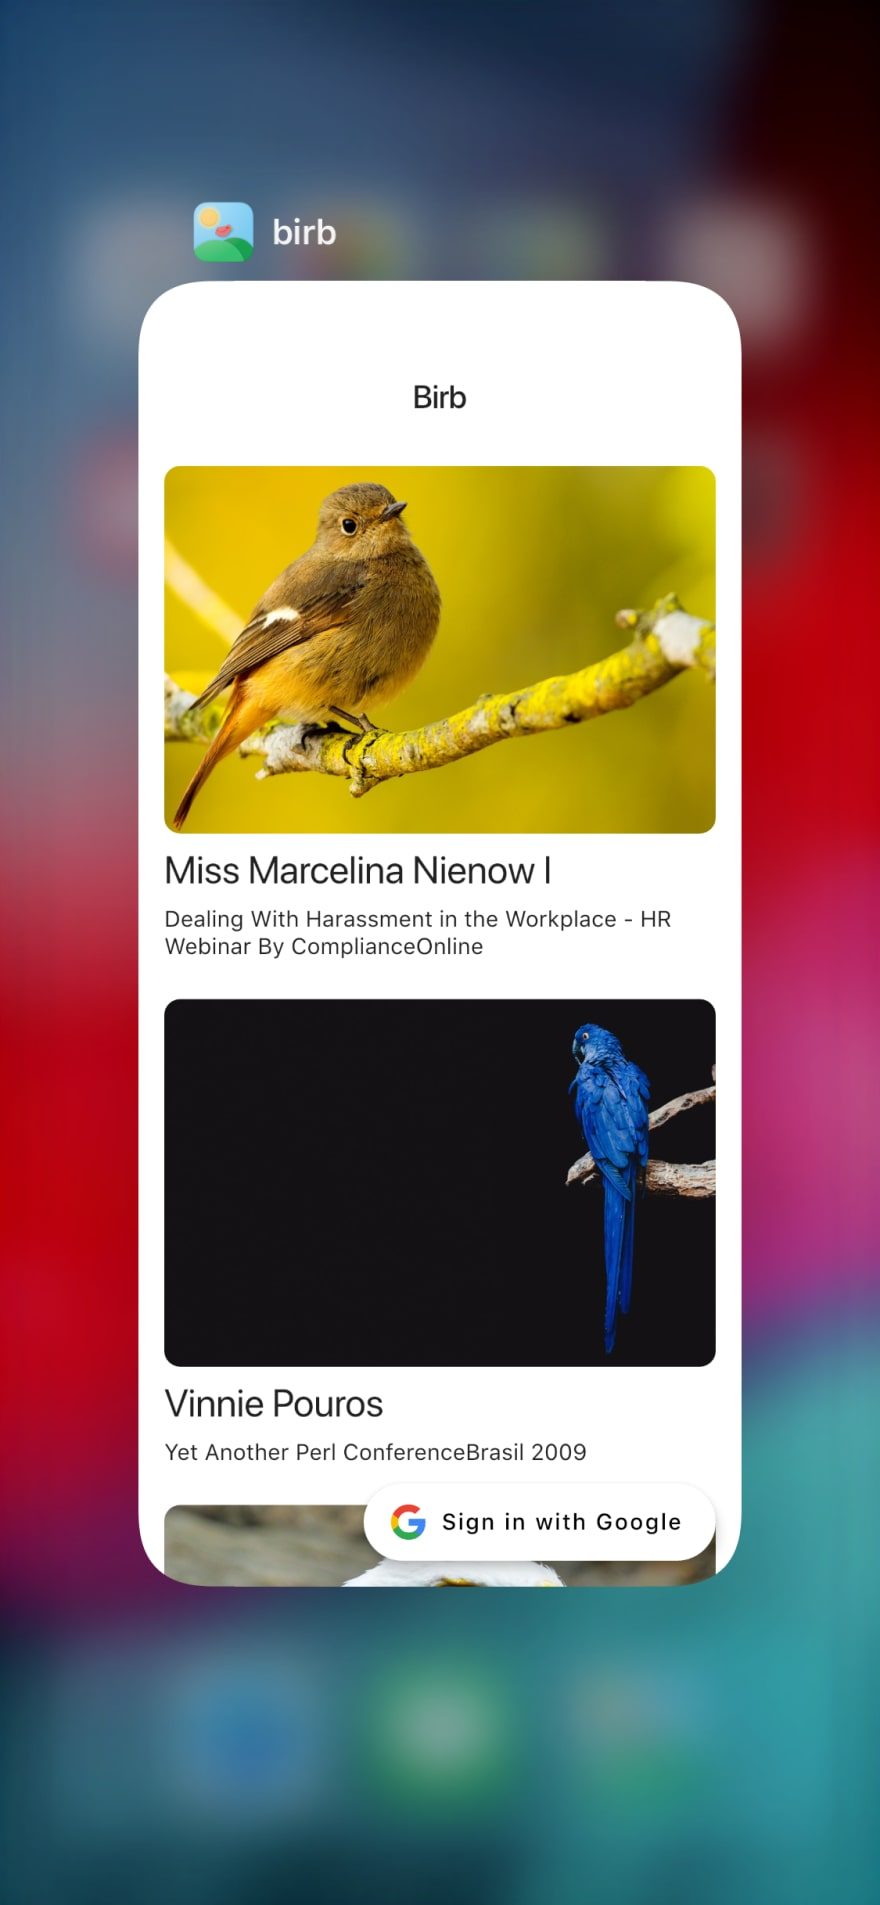 Birb logo on iOS app switcher